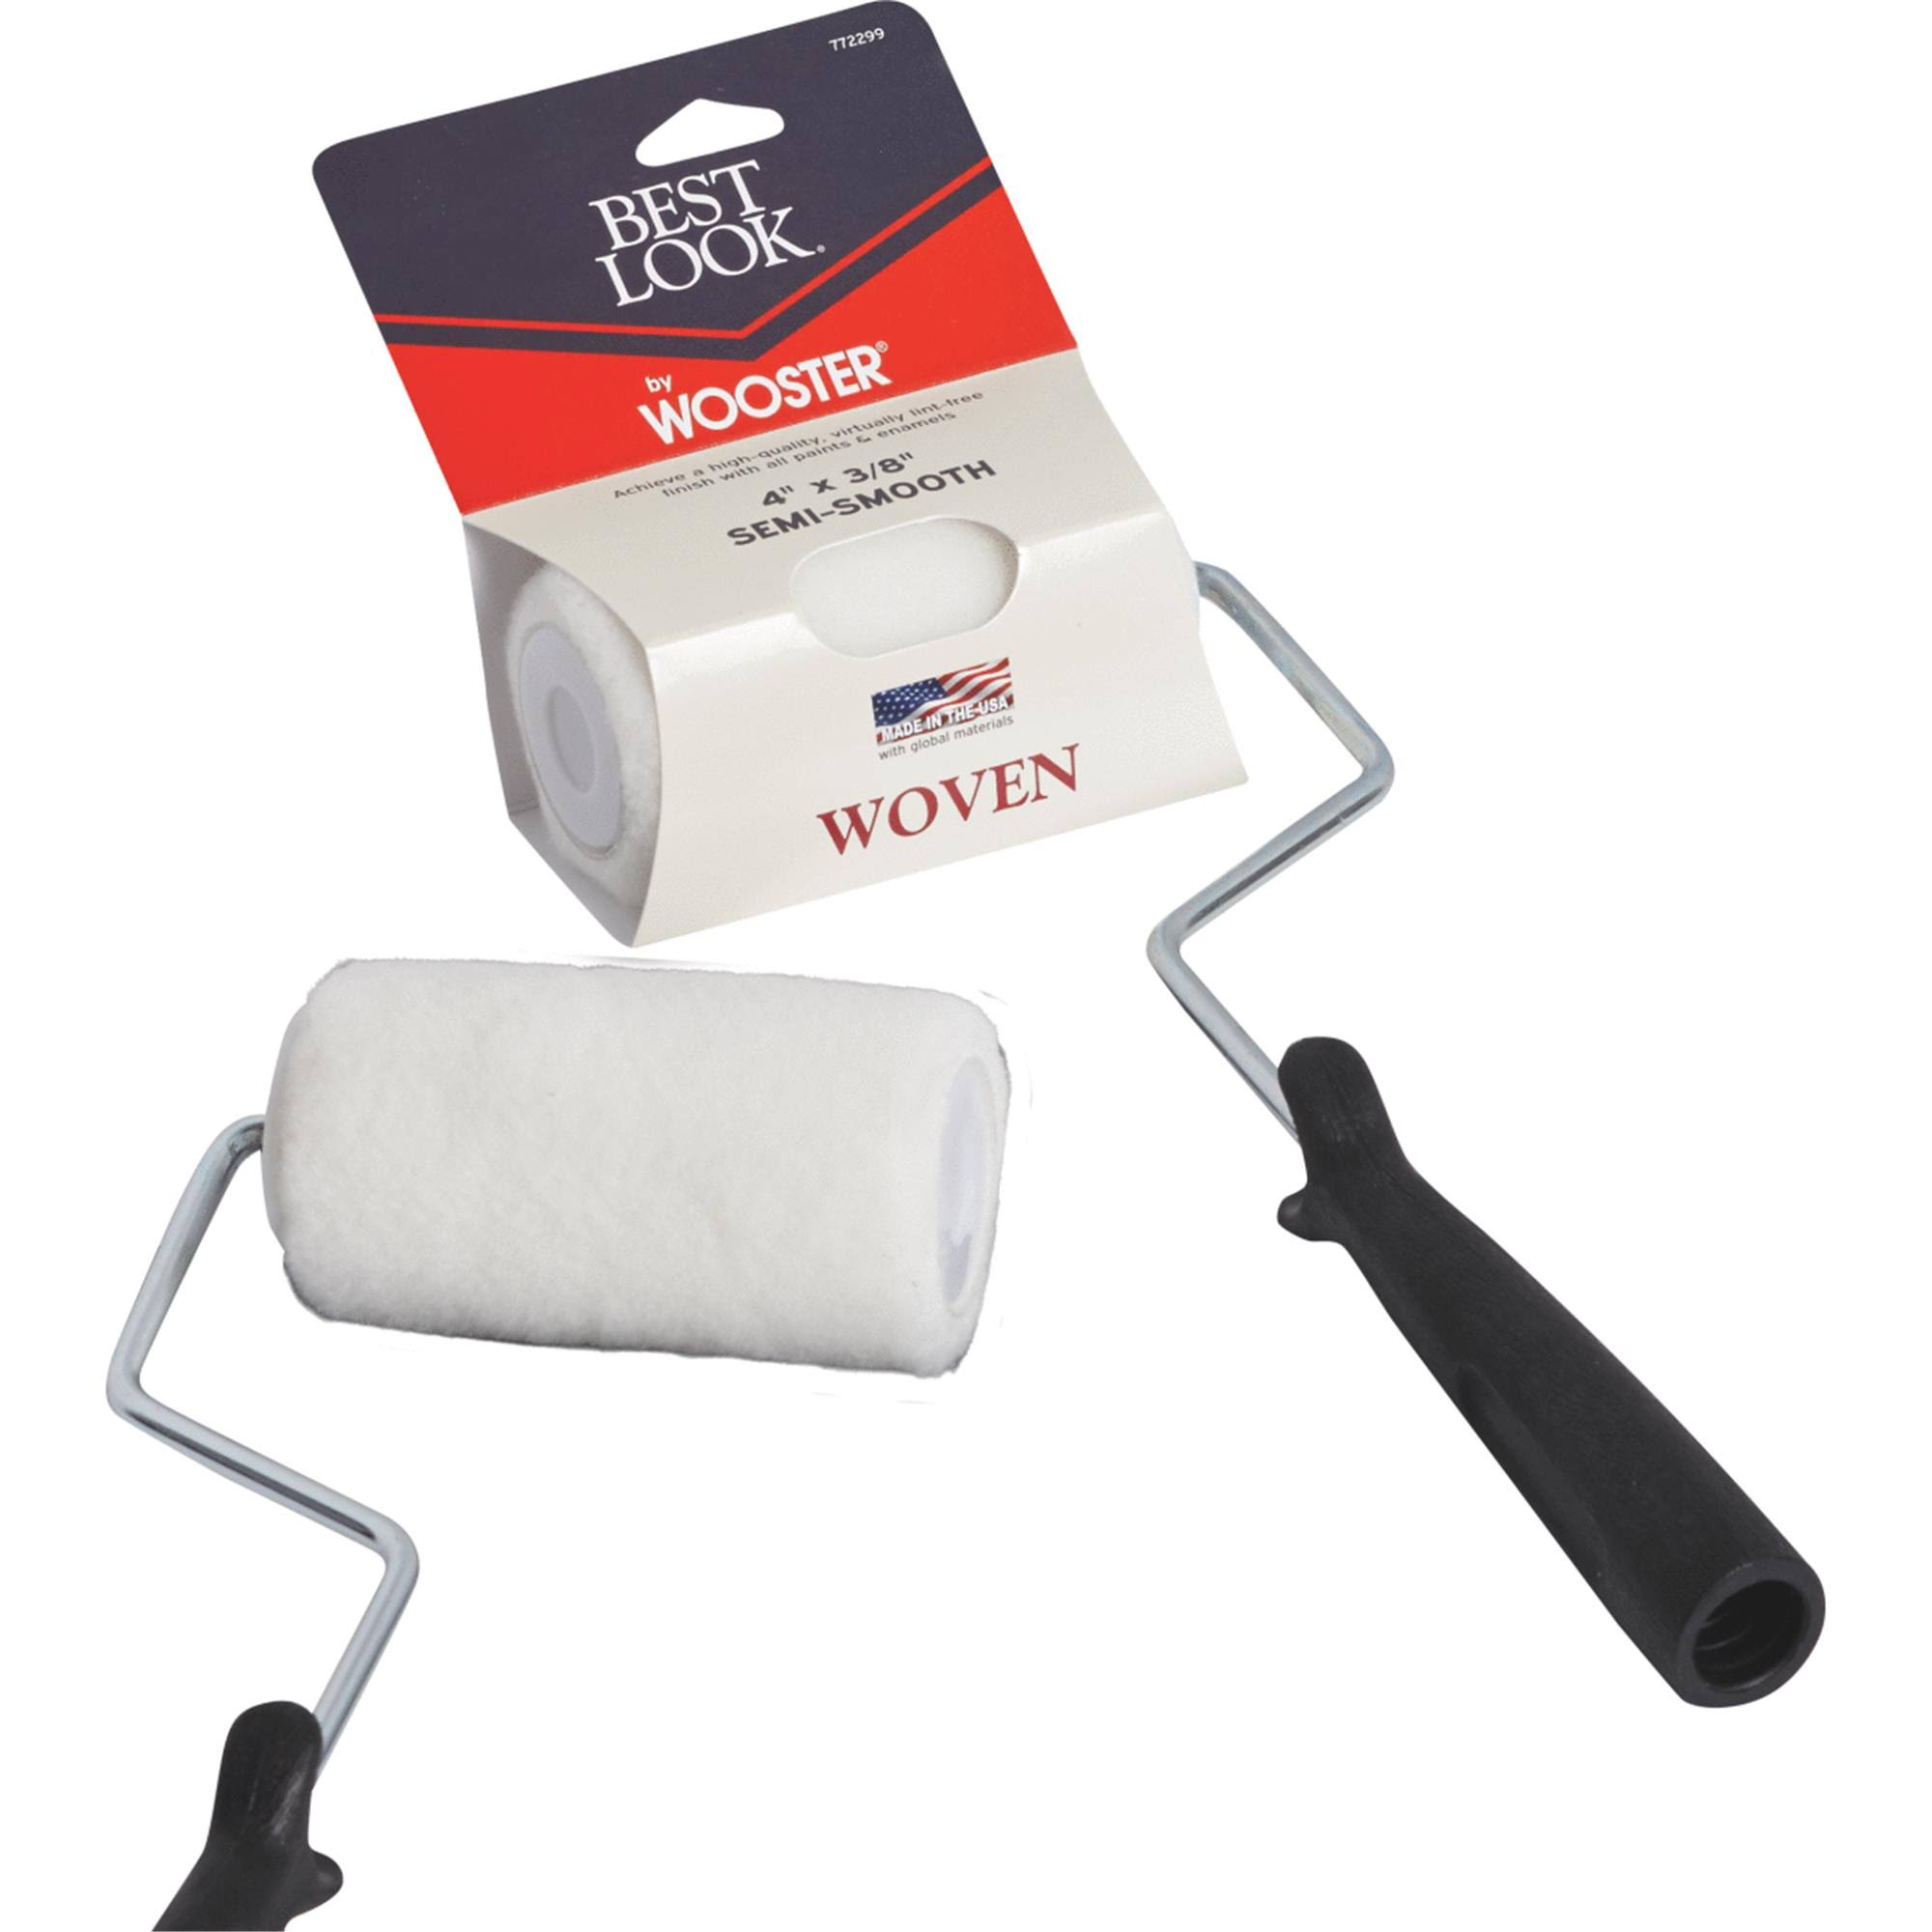 Best Look by Wooster Woven Paint Roller Cover & Frame DR436-4